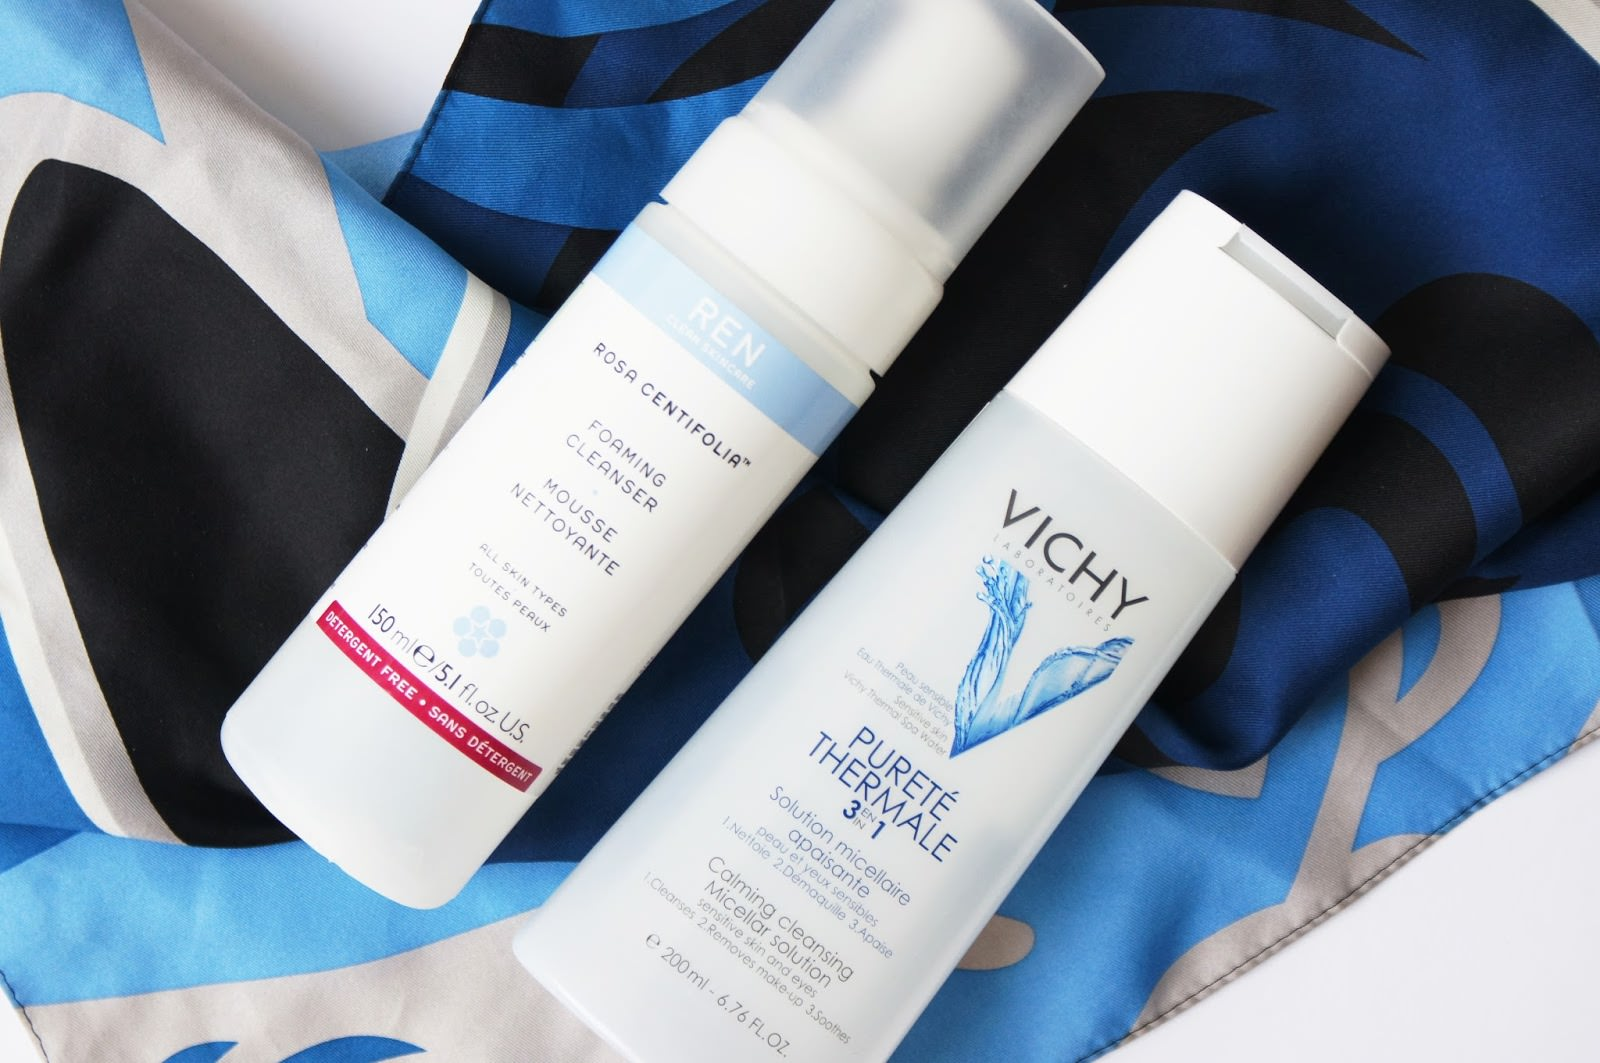 Vichy Purete Thermale 3-in-1 Cleansing Solution,REN Rose Centifolia Foaming Cleanser